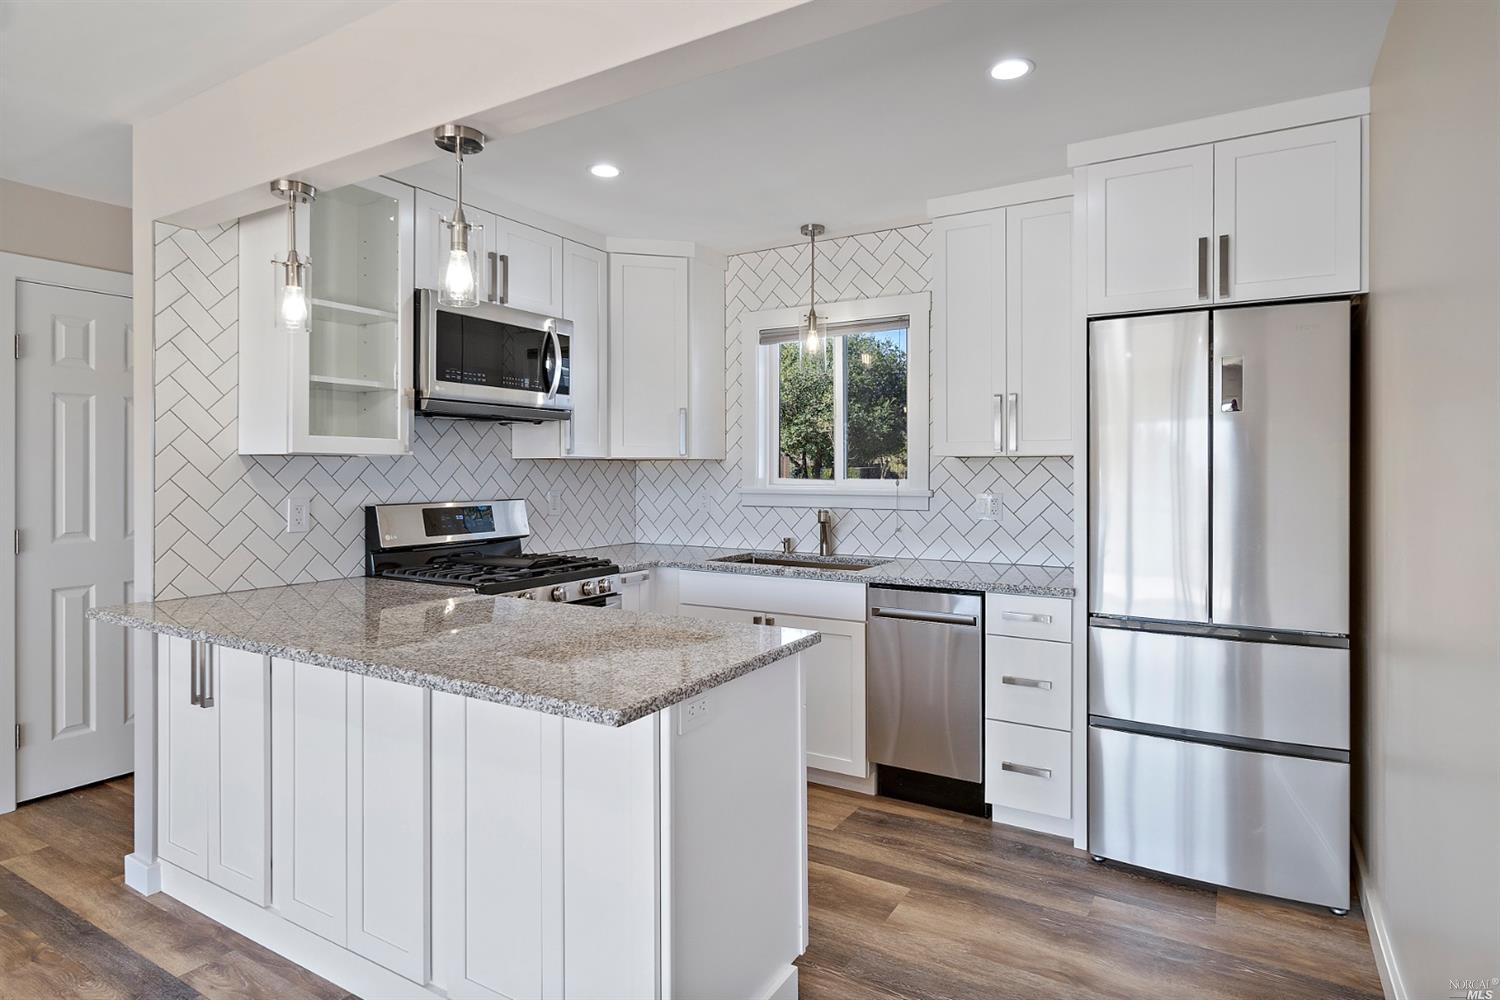 Stunning remodel with great attention to quality and detail. Two bedrooms and an office. Kitchen/living with fireplace and views to the back and beyond. Situated on an 8,500 sq. ft. lot with open space adjacent and behind.  Wonderful country feel ready for you to enjoy.